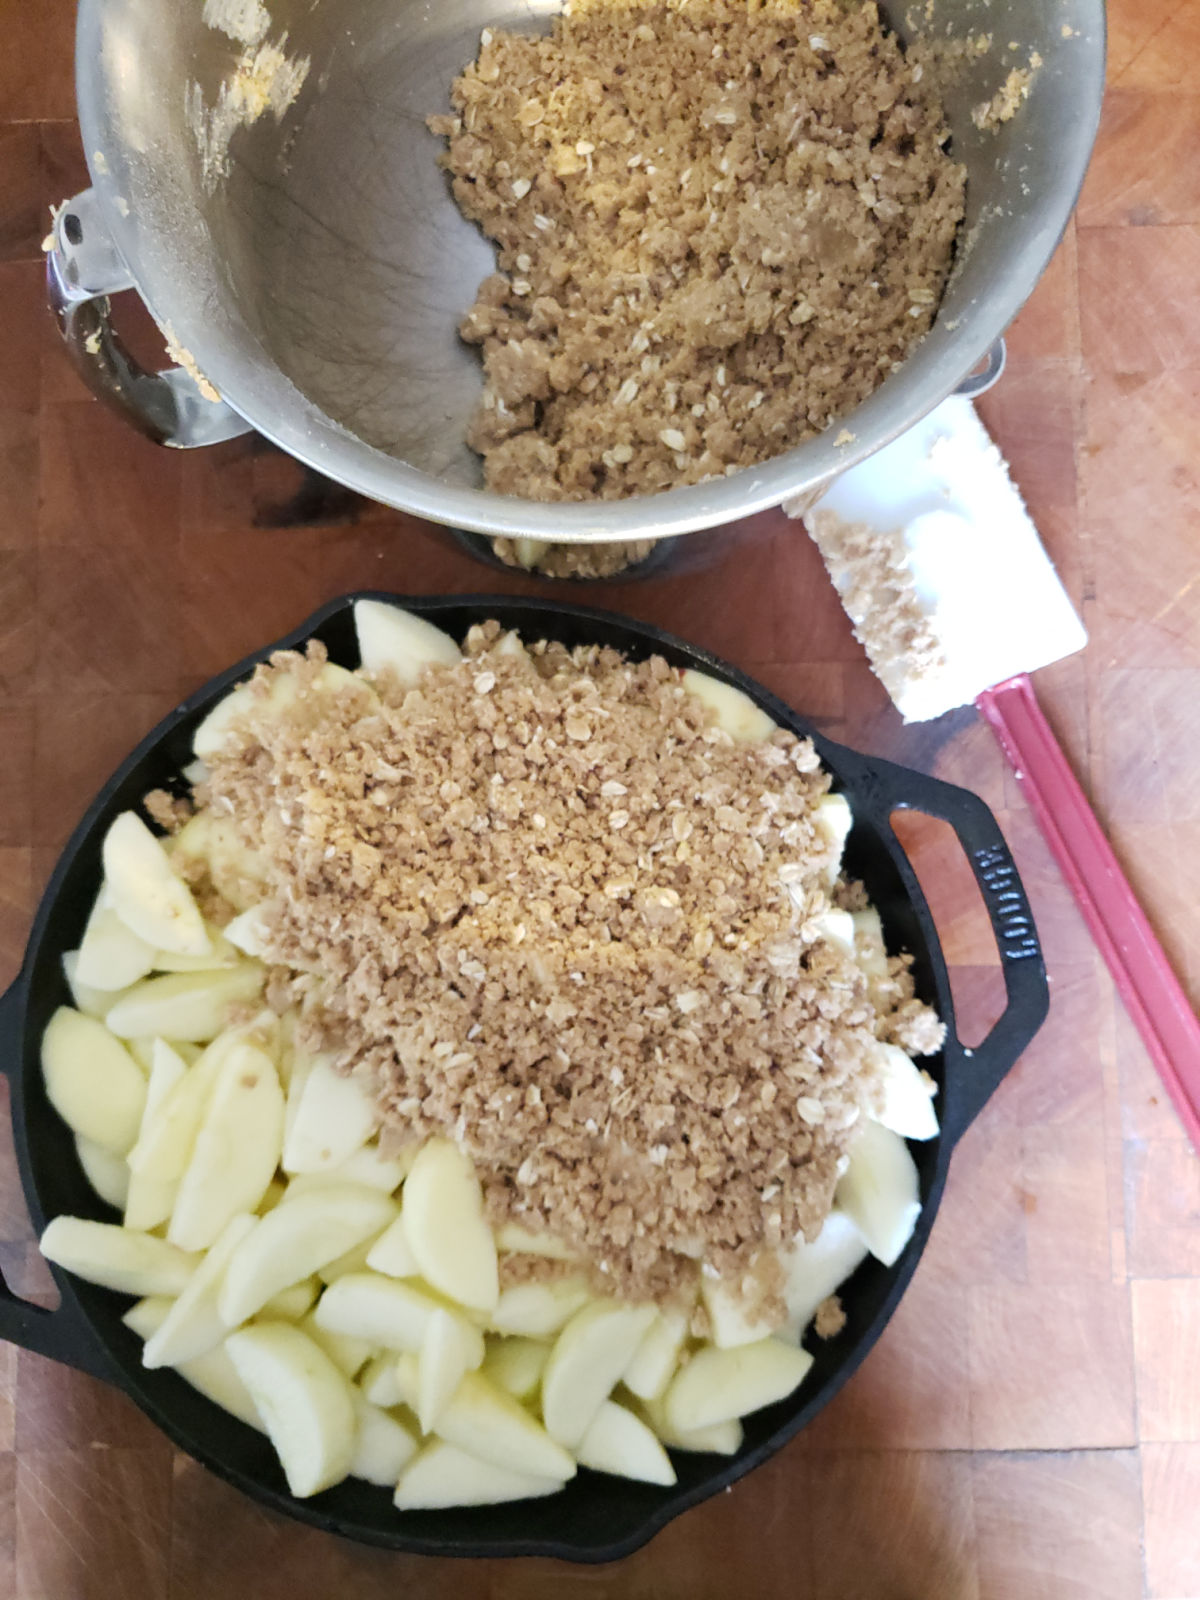 Apples in dual handle cast iron skillet putting crumb topping on, on butcher block.